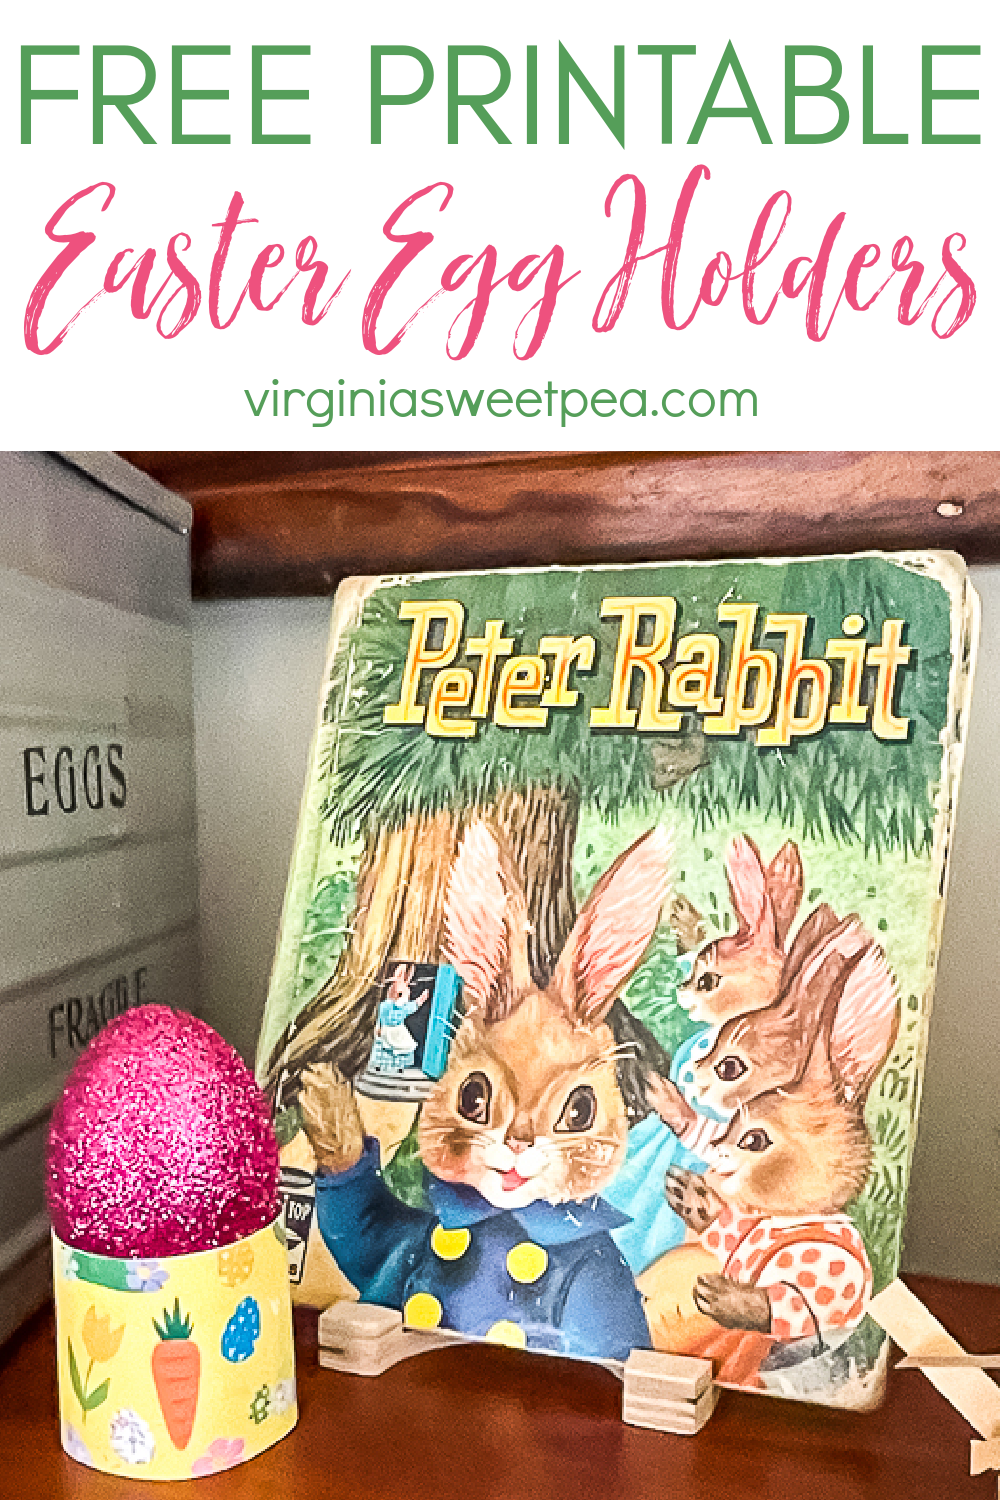 Use these free printable Easter egg holders to display eggs for Easter.  Print on cardstock cut them out, and they are ready to be enjoyed.  There are eight patterns in a variety of colors.  Kids or adults will enjoy using these! via @spaula